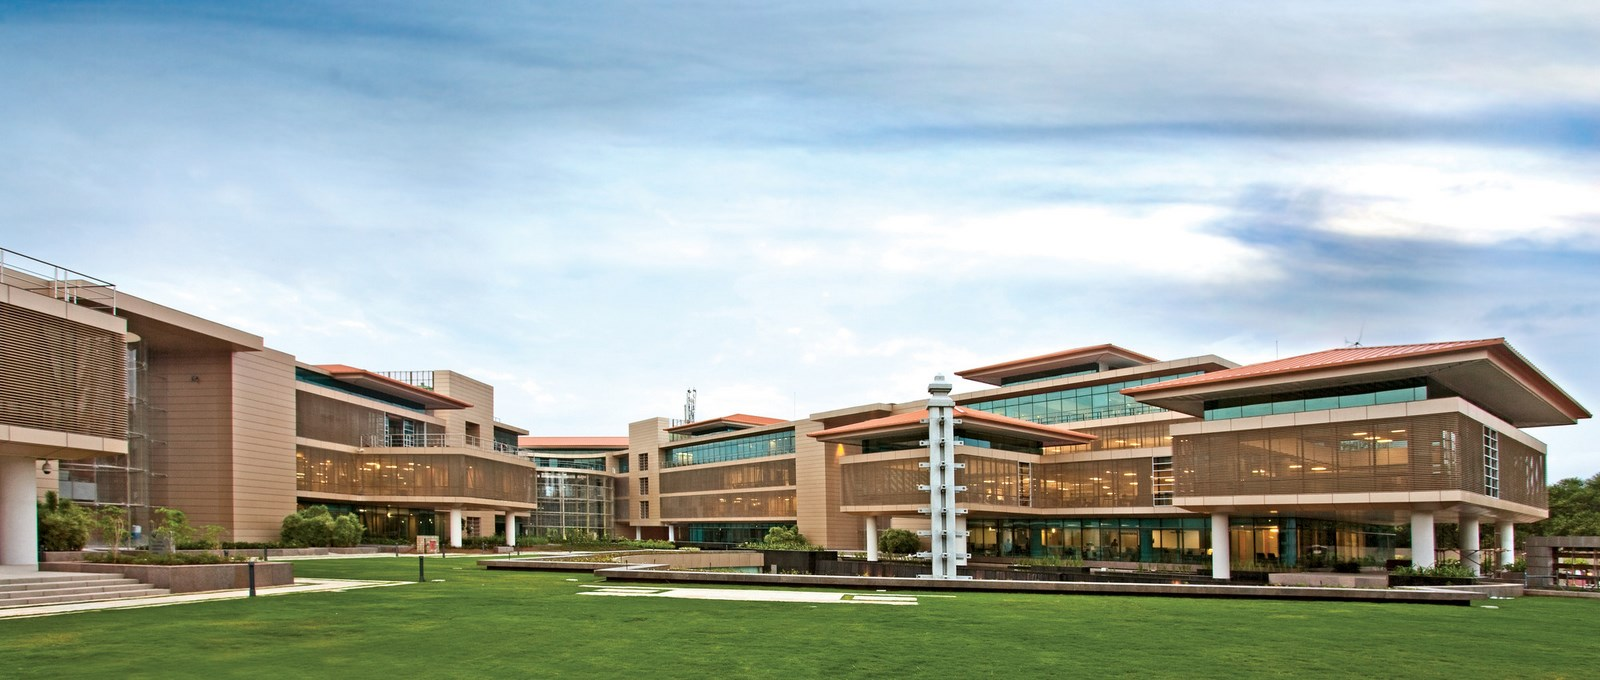 Christopher Benninger- Art of an Architect-Suzlon One Earth Global Headquarters -1